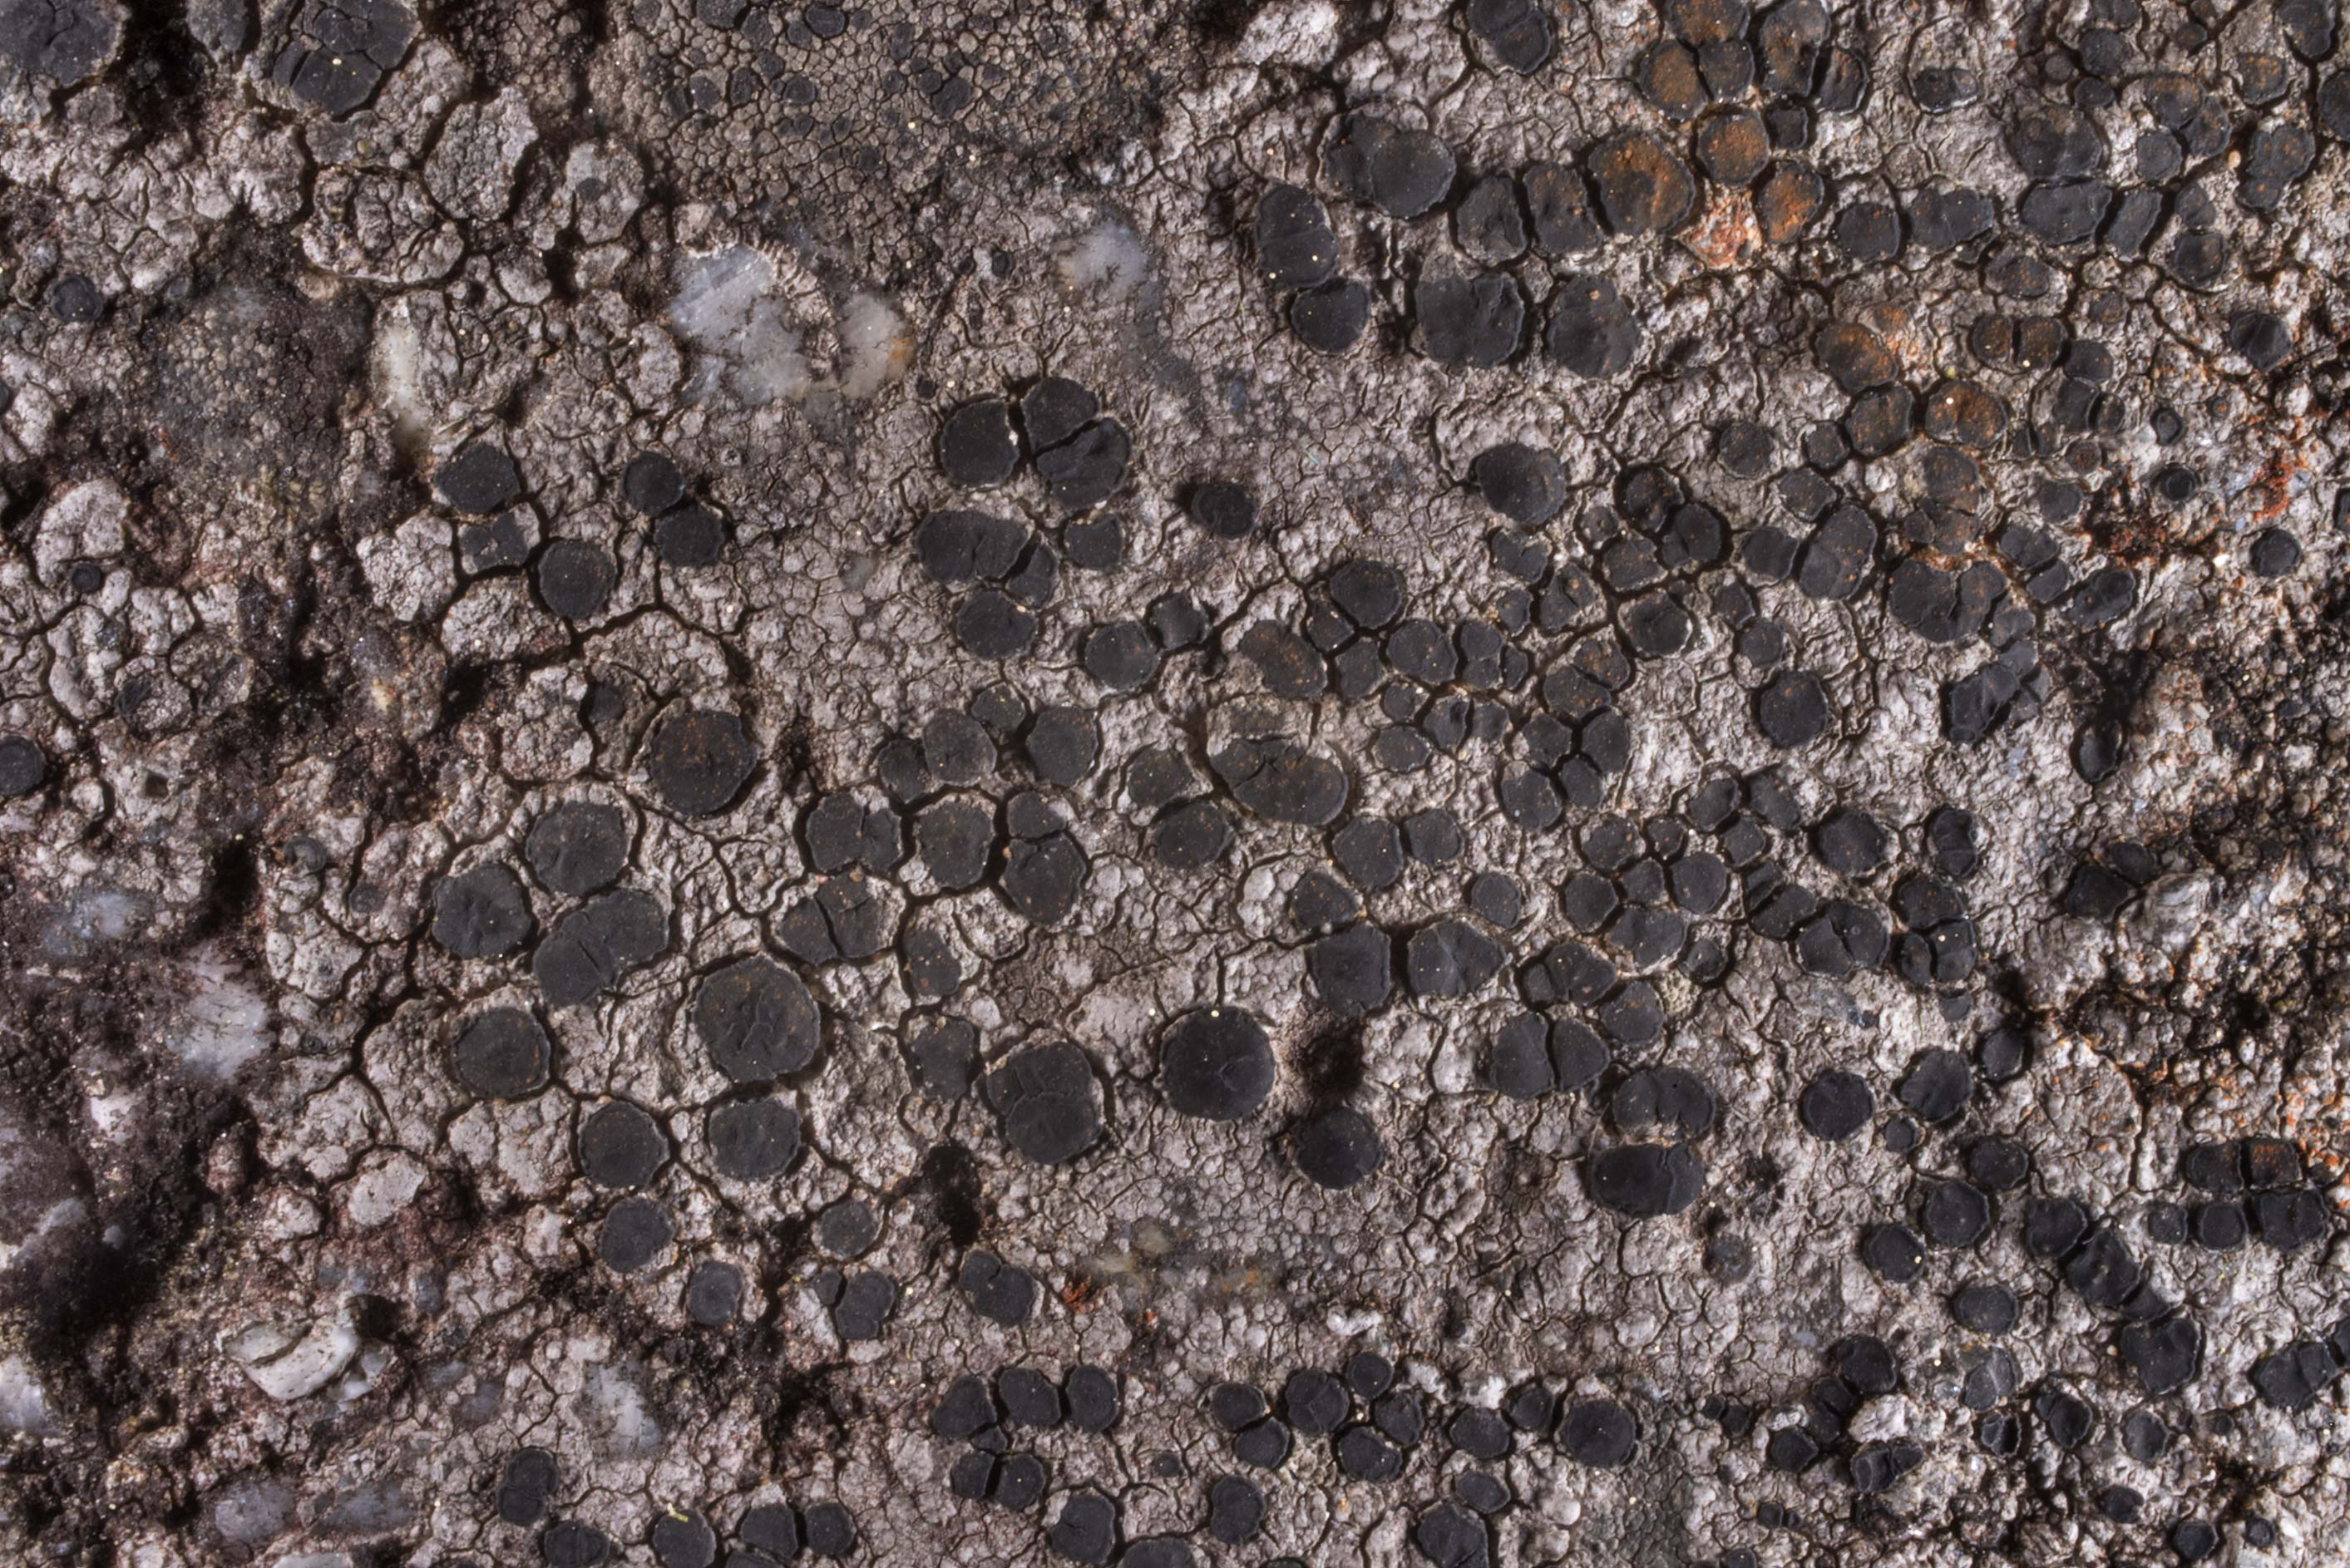 Saxicolous lichen Lecidea lapicida on a stone in...miles north from St.Petersburg. Russia